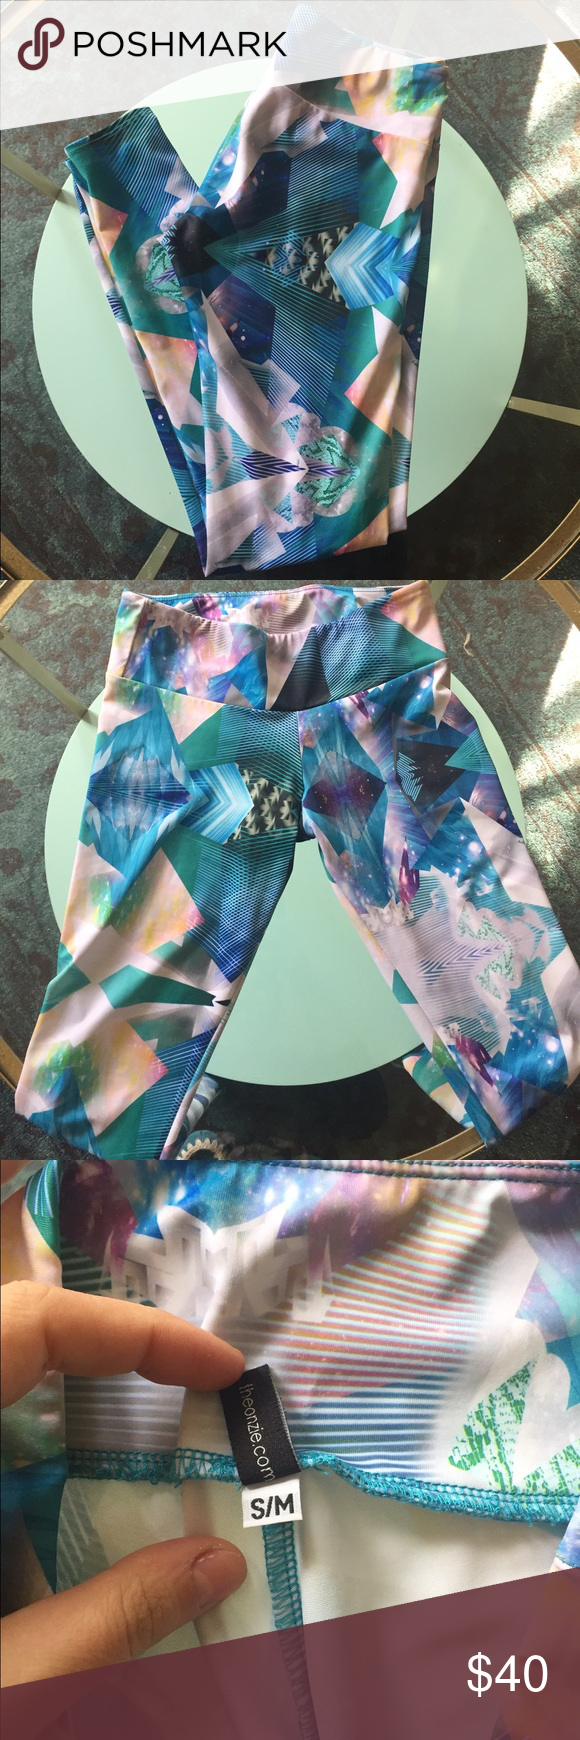 Onzie leggings EUC onzie leggings . Only worn a couple of times. No holes or tears. Size S/M. Onzie Pants Leggings